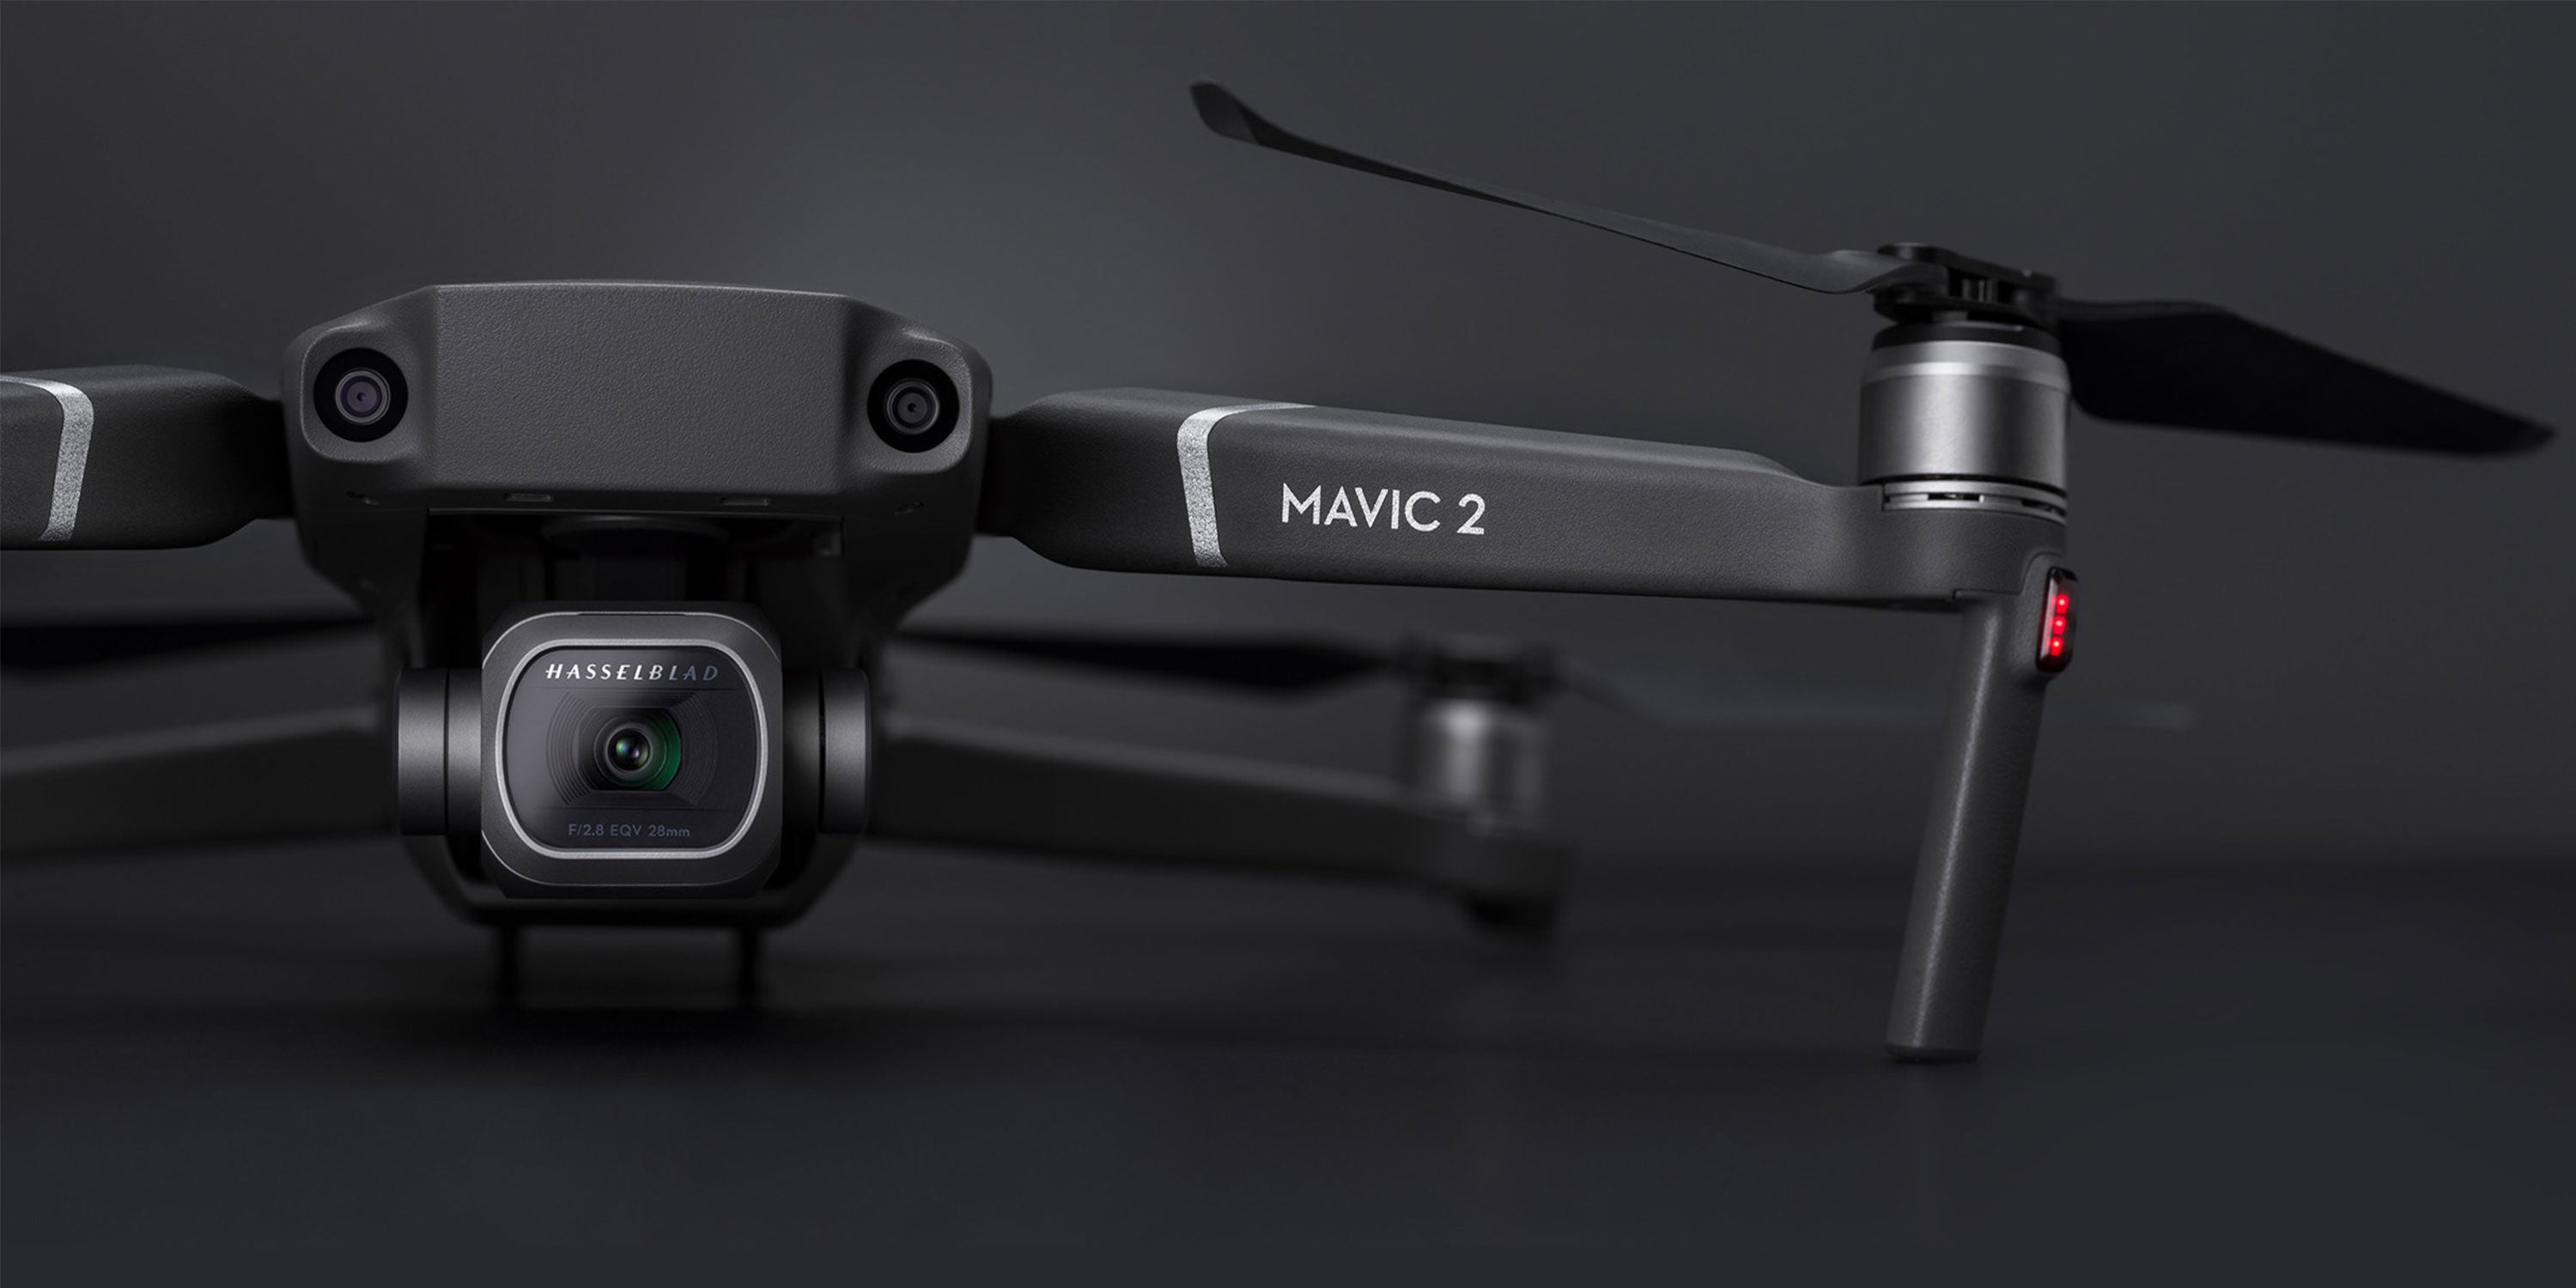 Mavic 2: Worth the wait